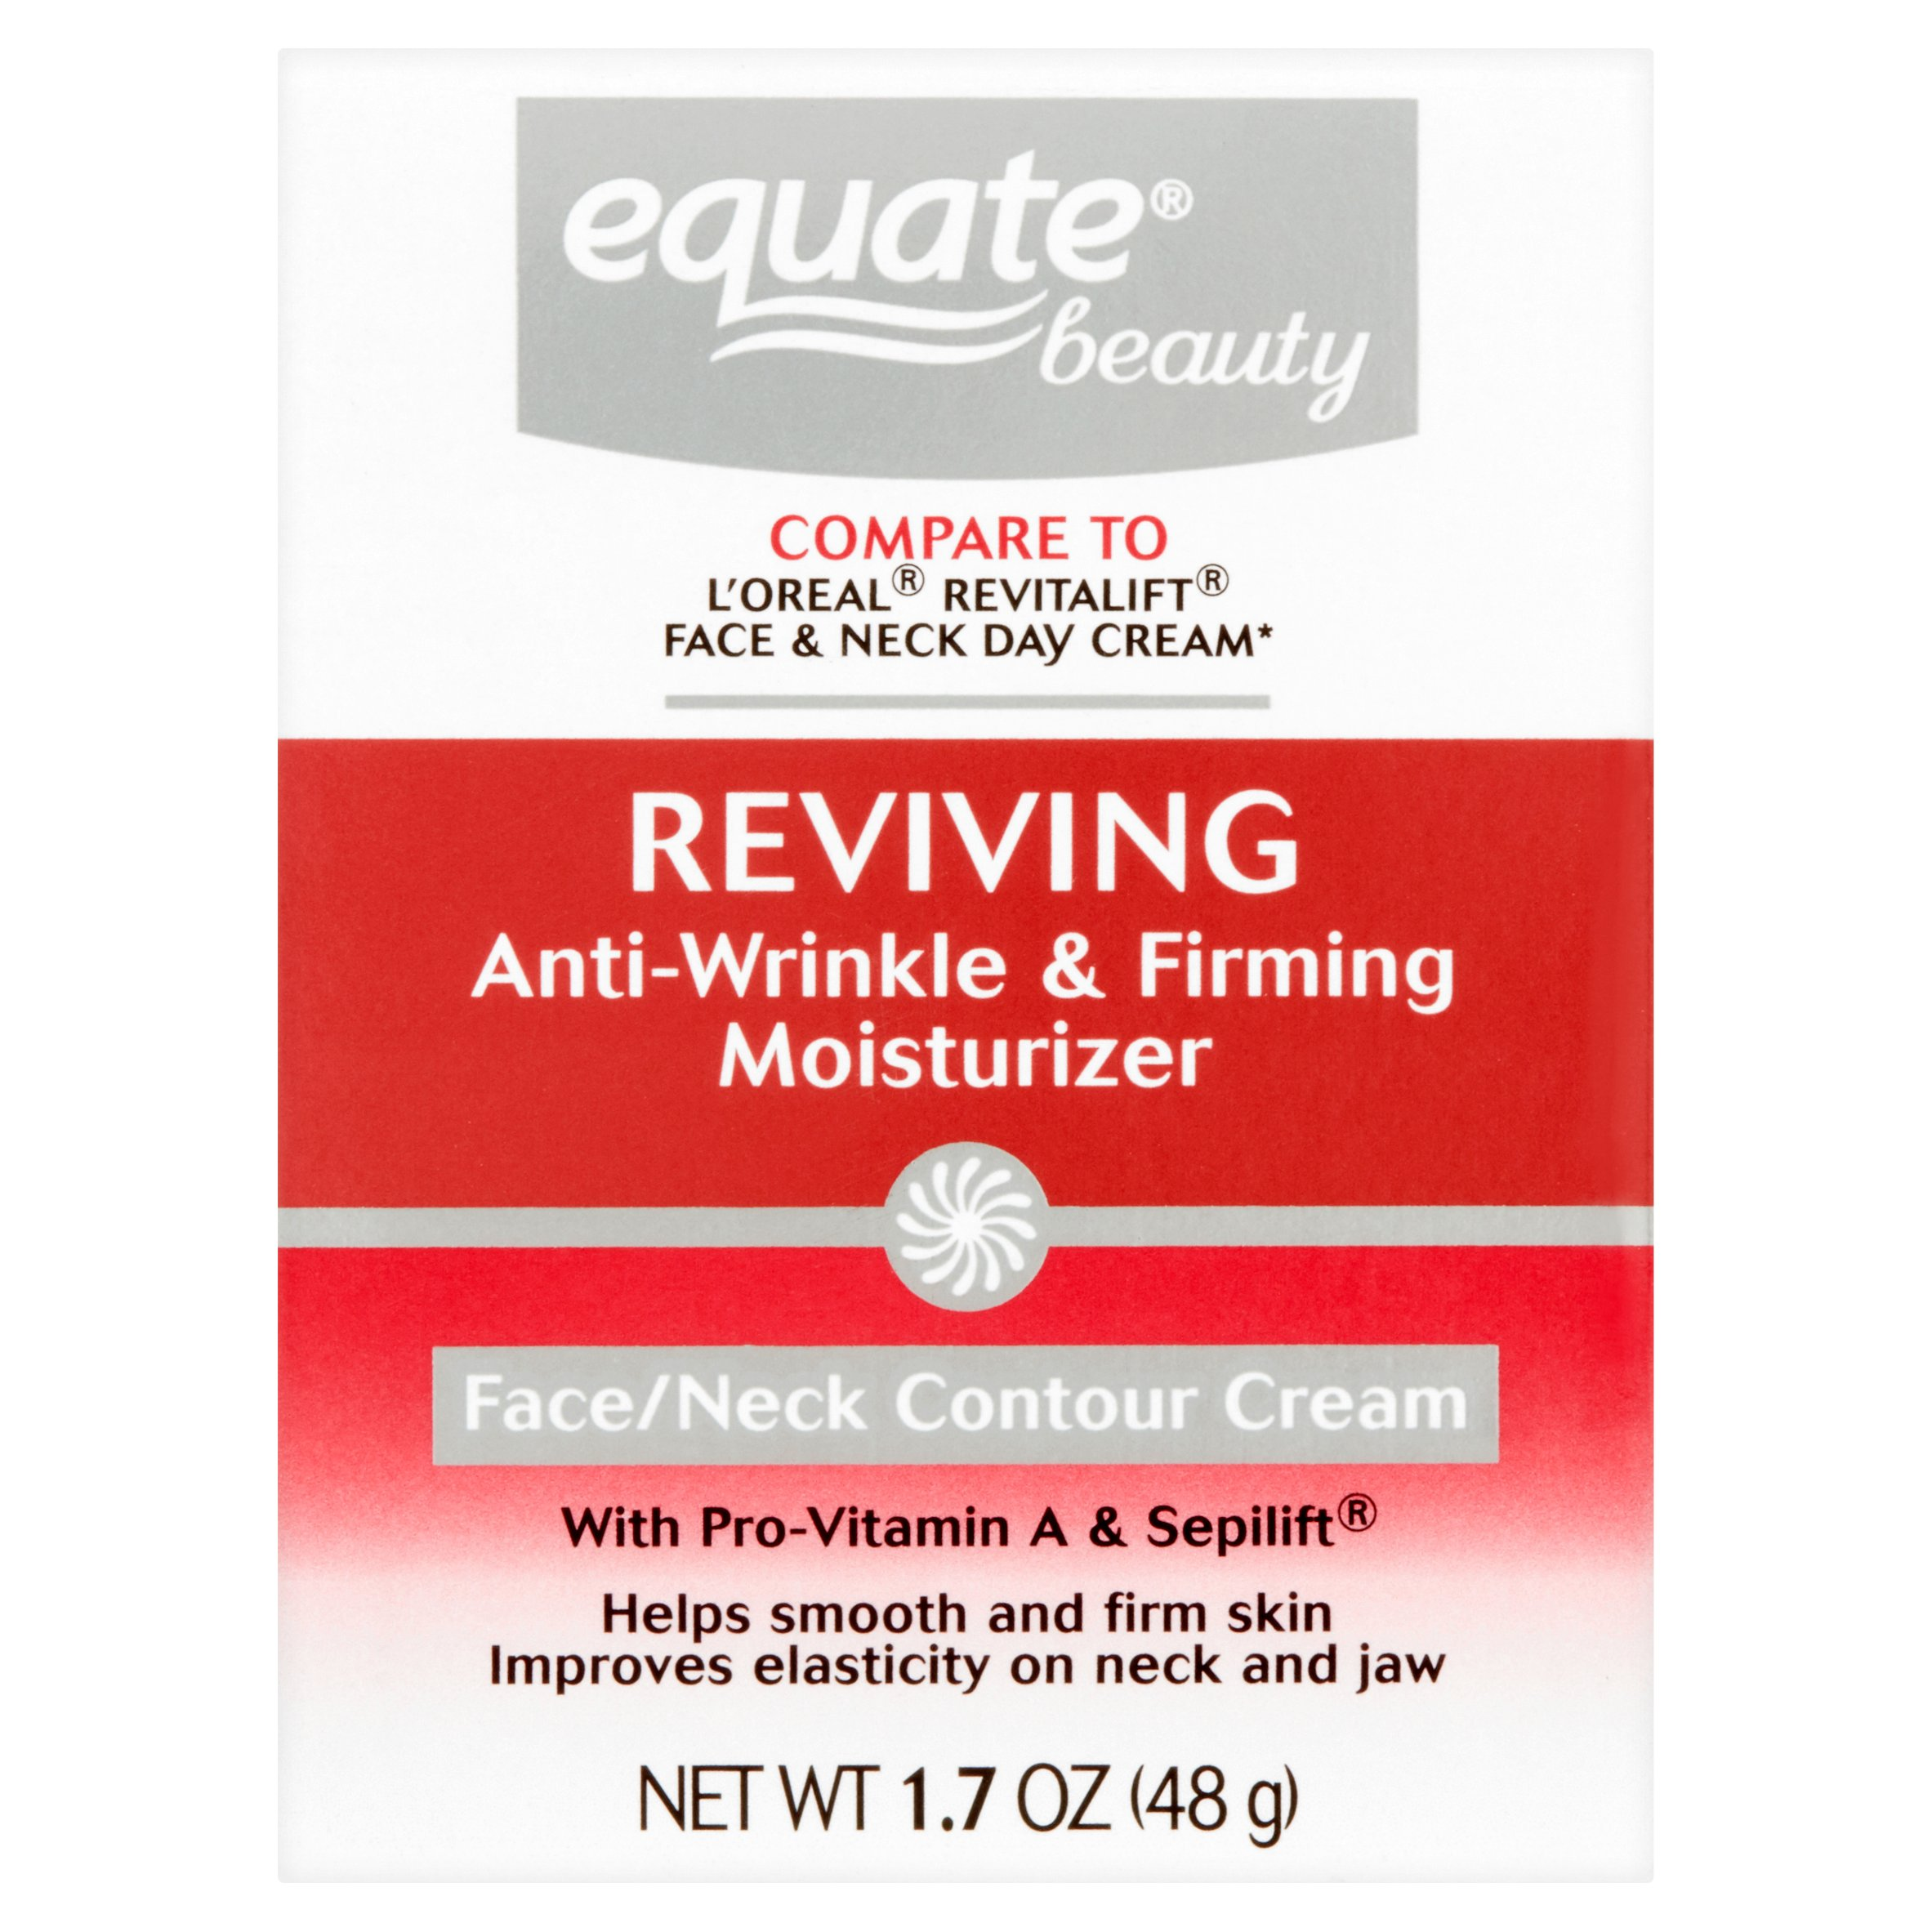 Equate Advanced Firming & Anti-Wrinkle Cream Face and Neck Moisturizer, 1.7oz